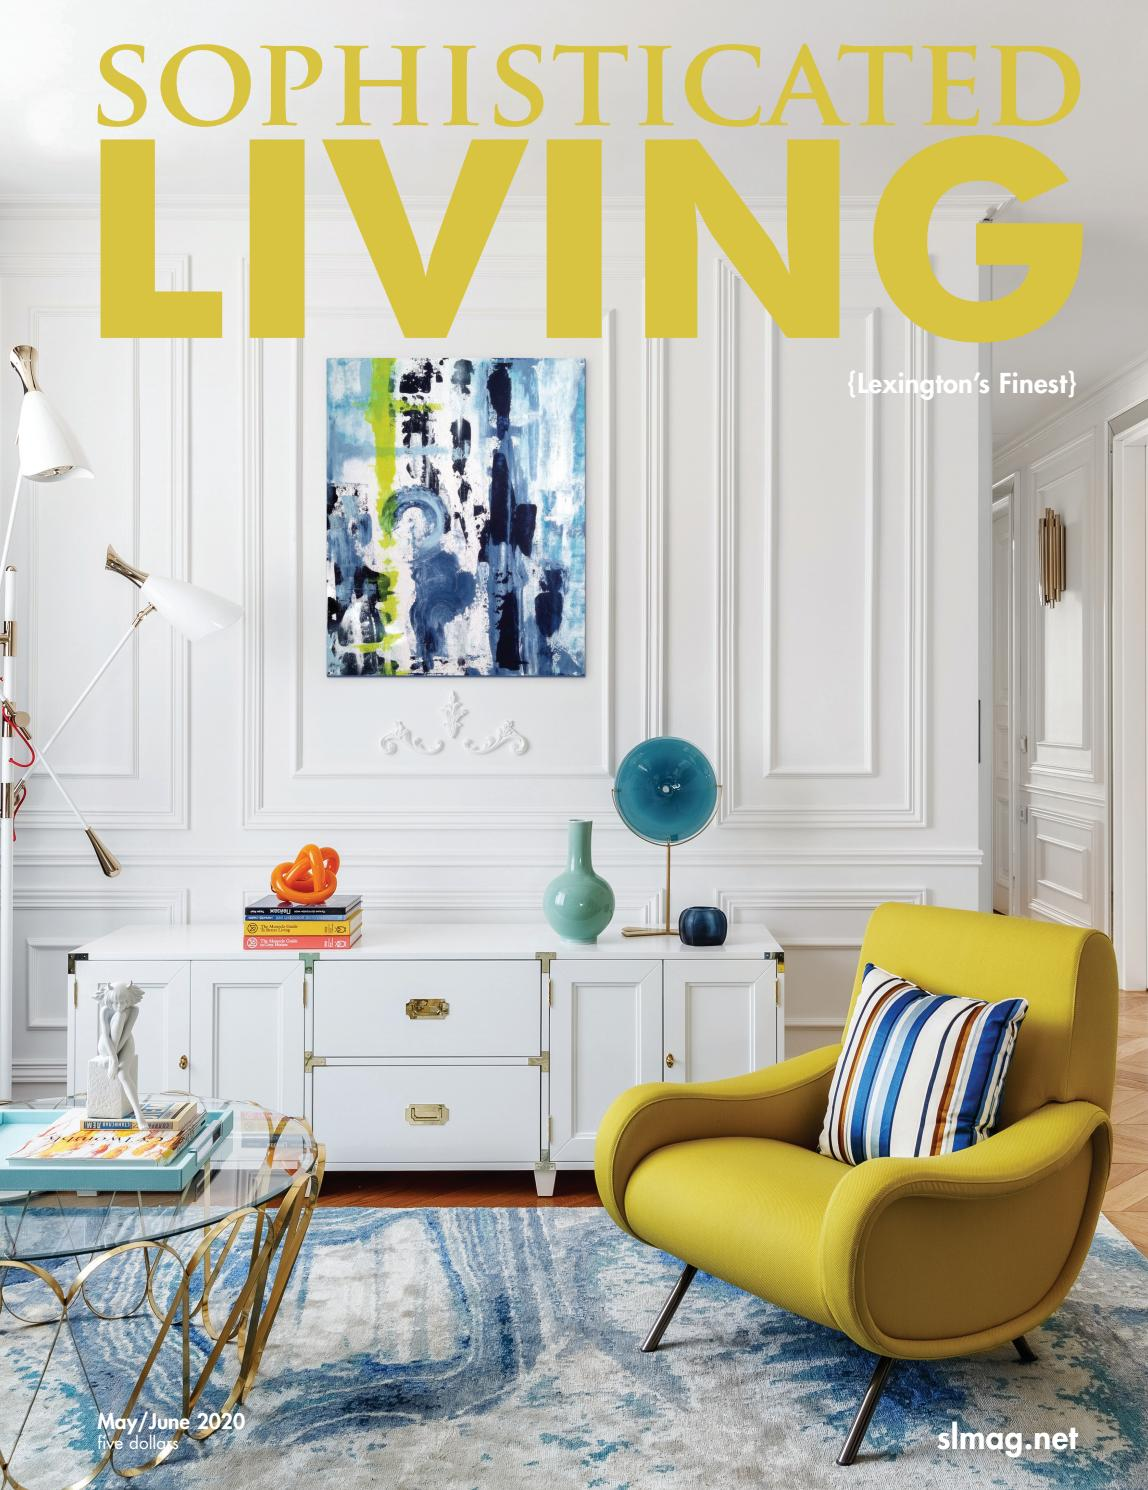 Sophisticated Living Lexington MayJune 2020 by